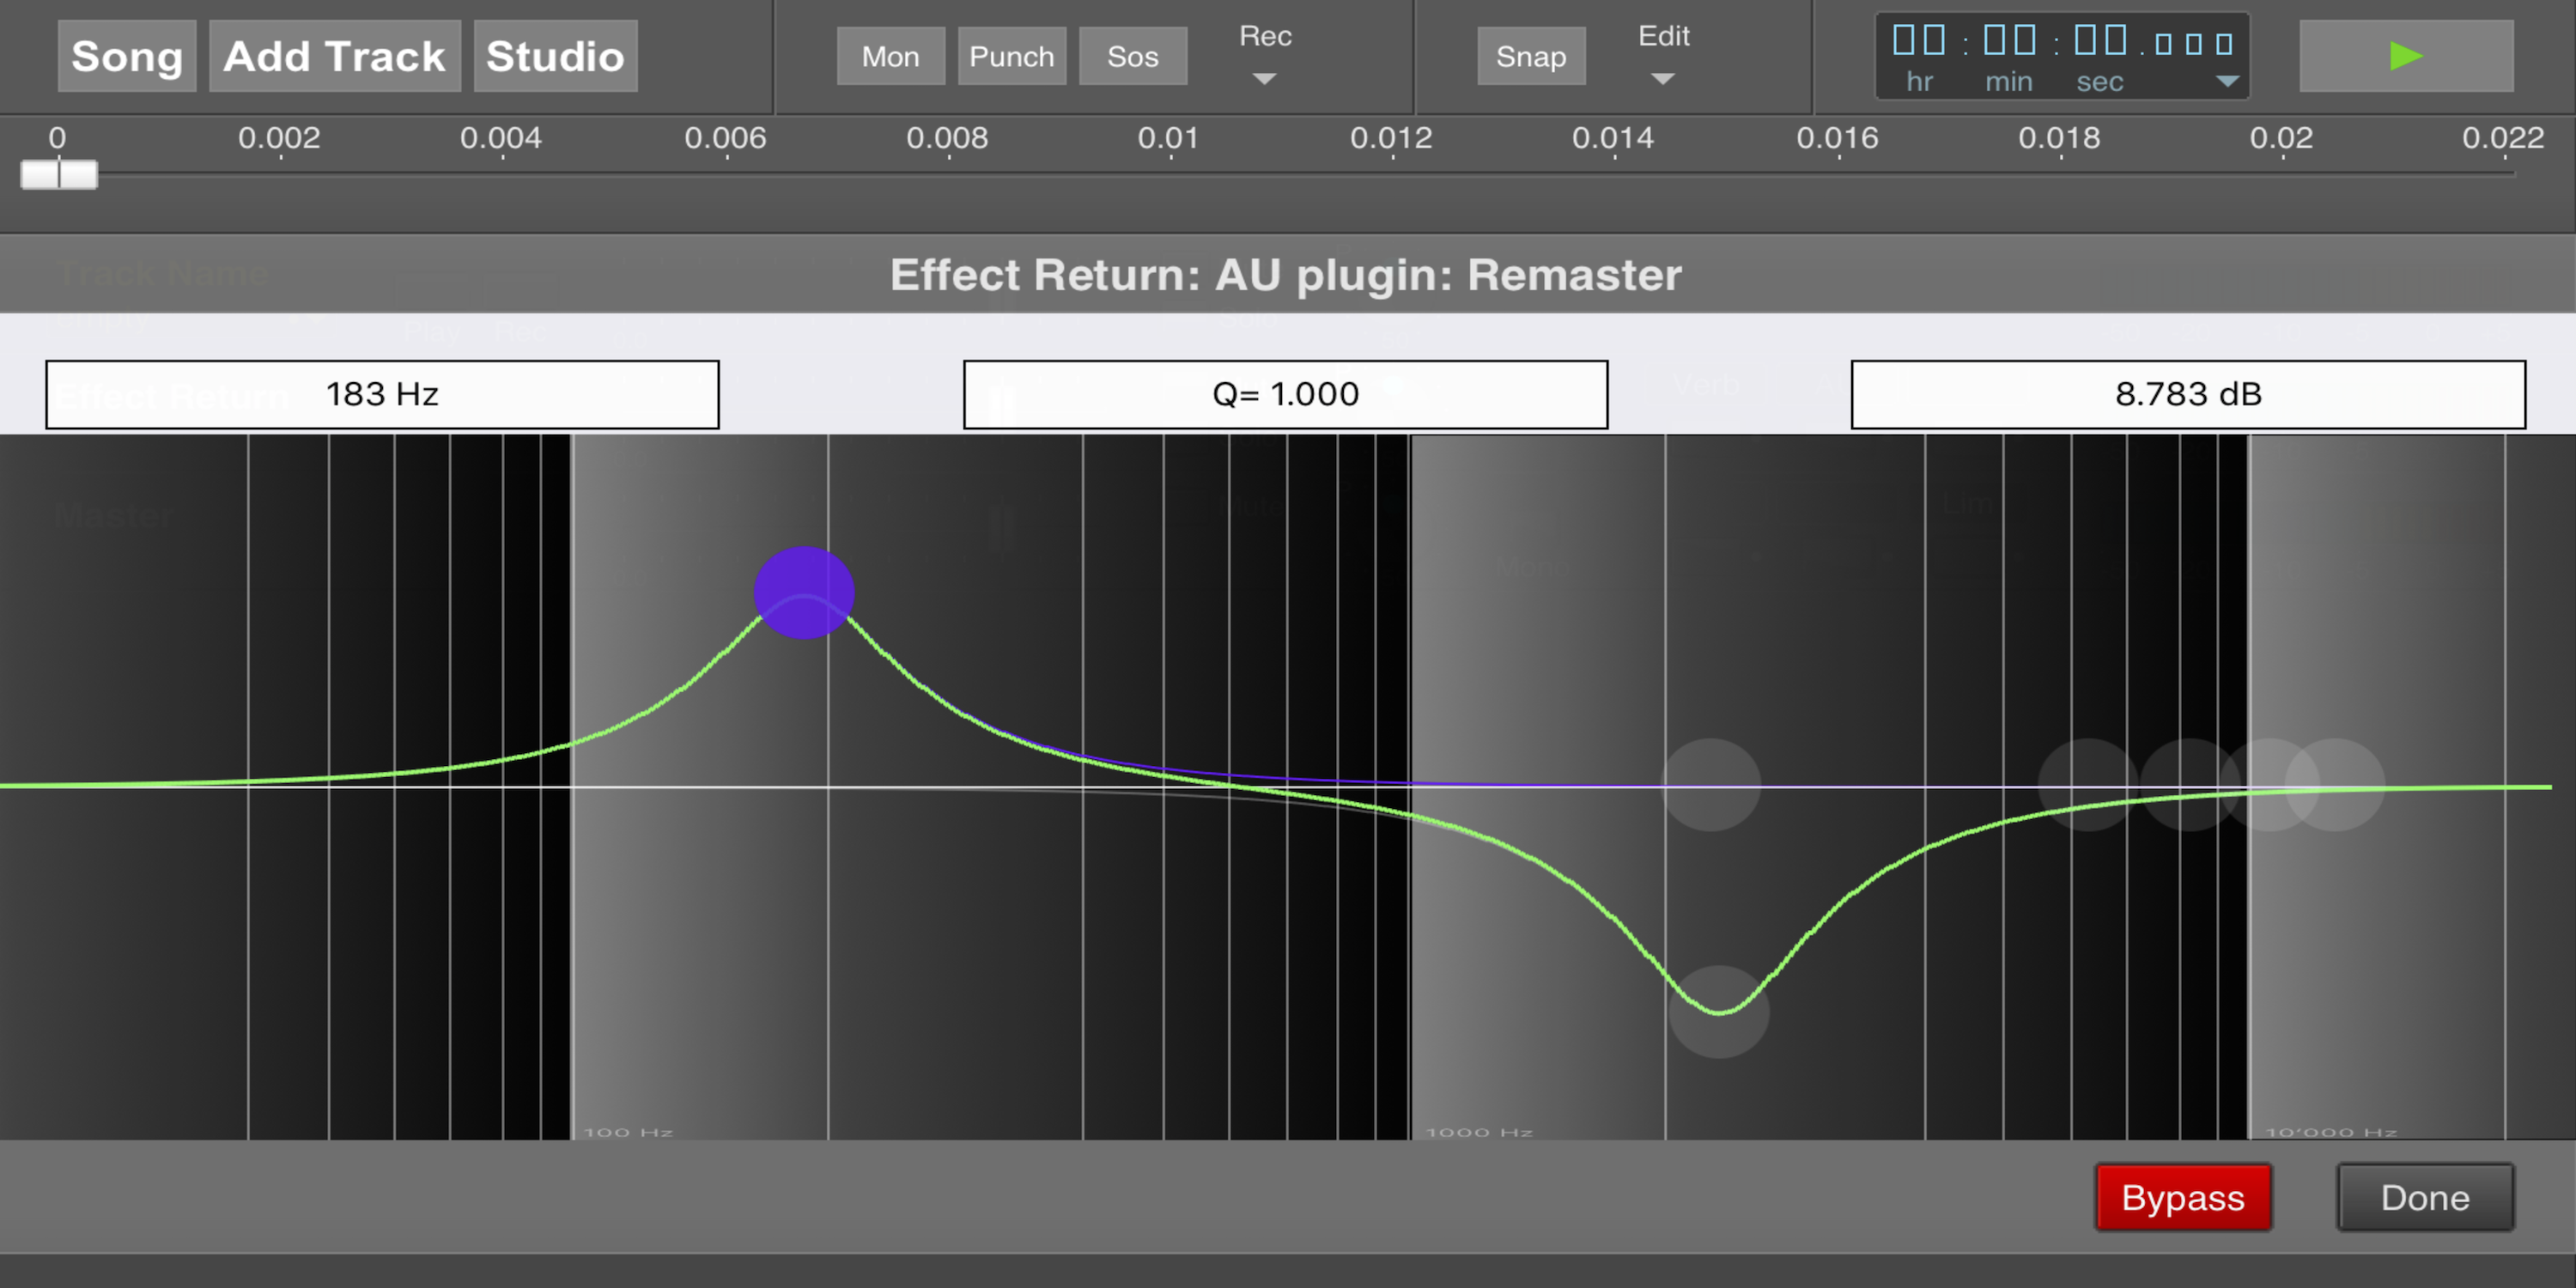 iOS-9-AU-plugin-remaster